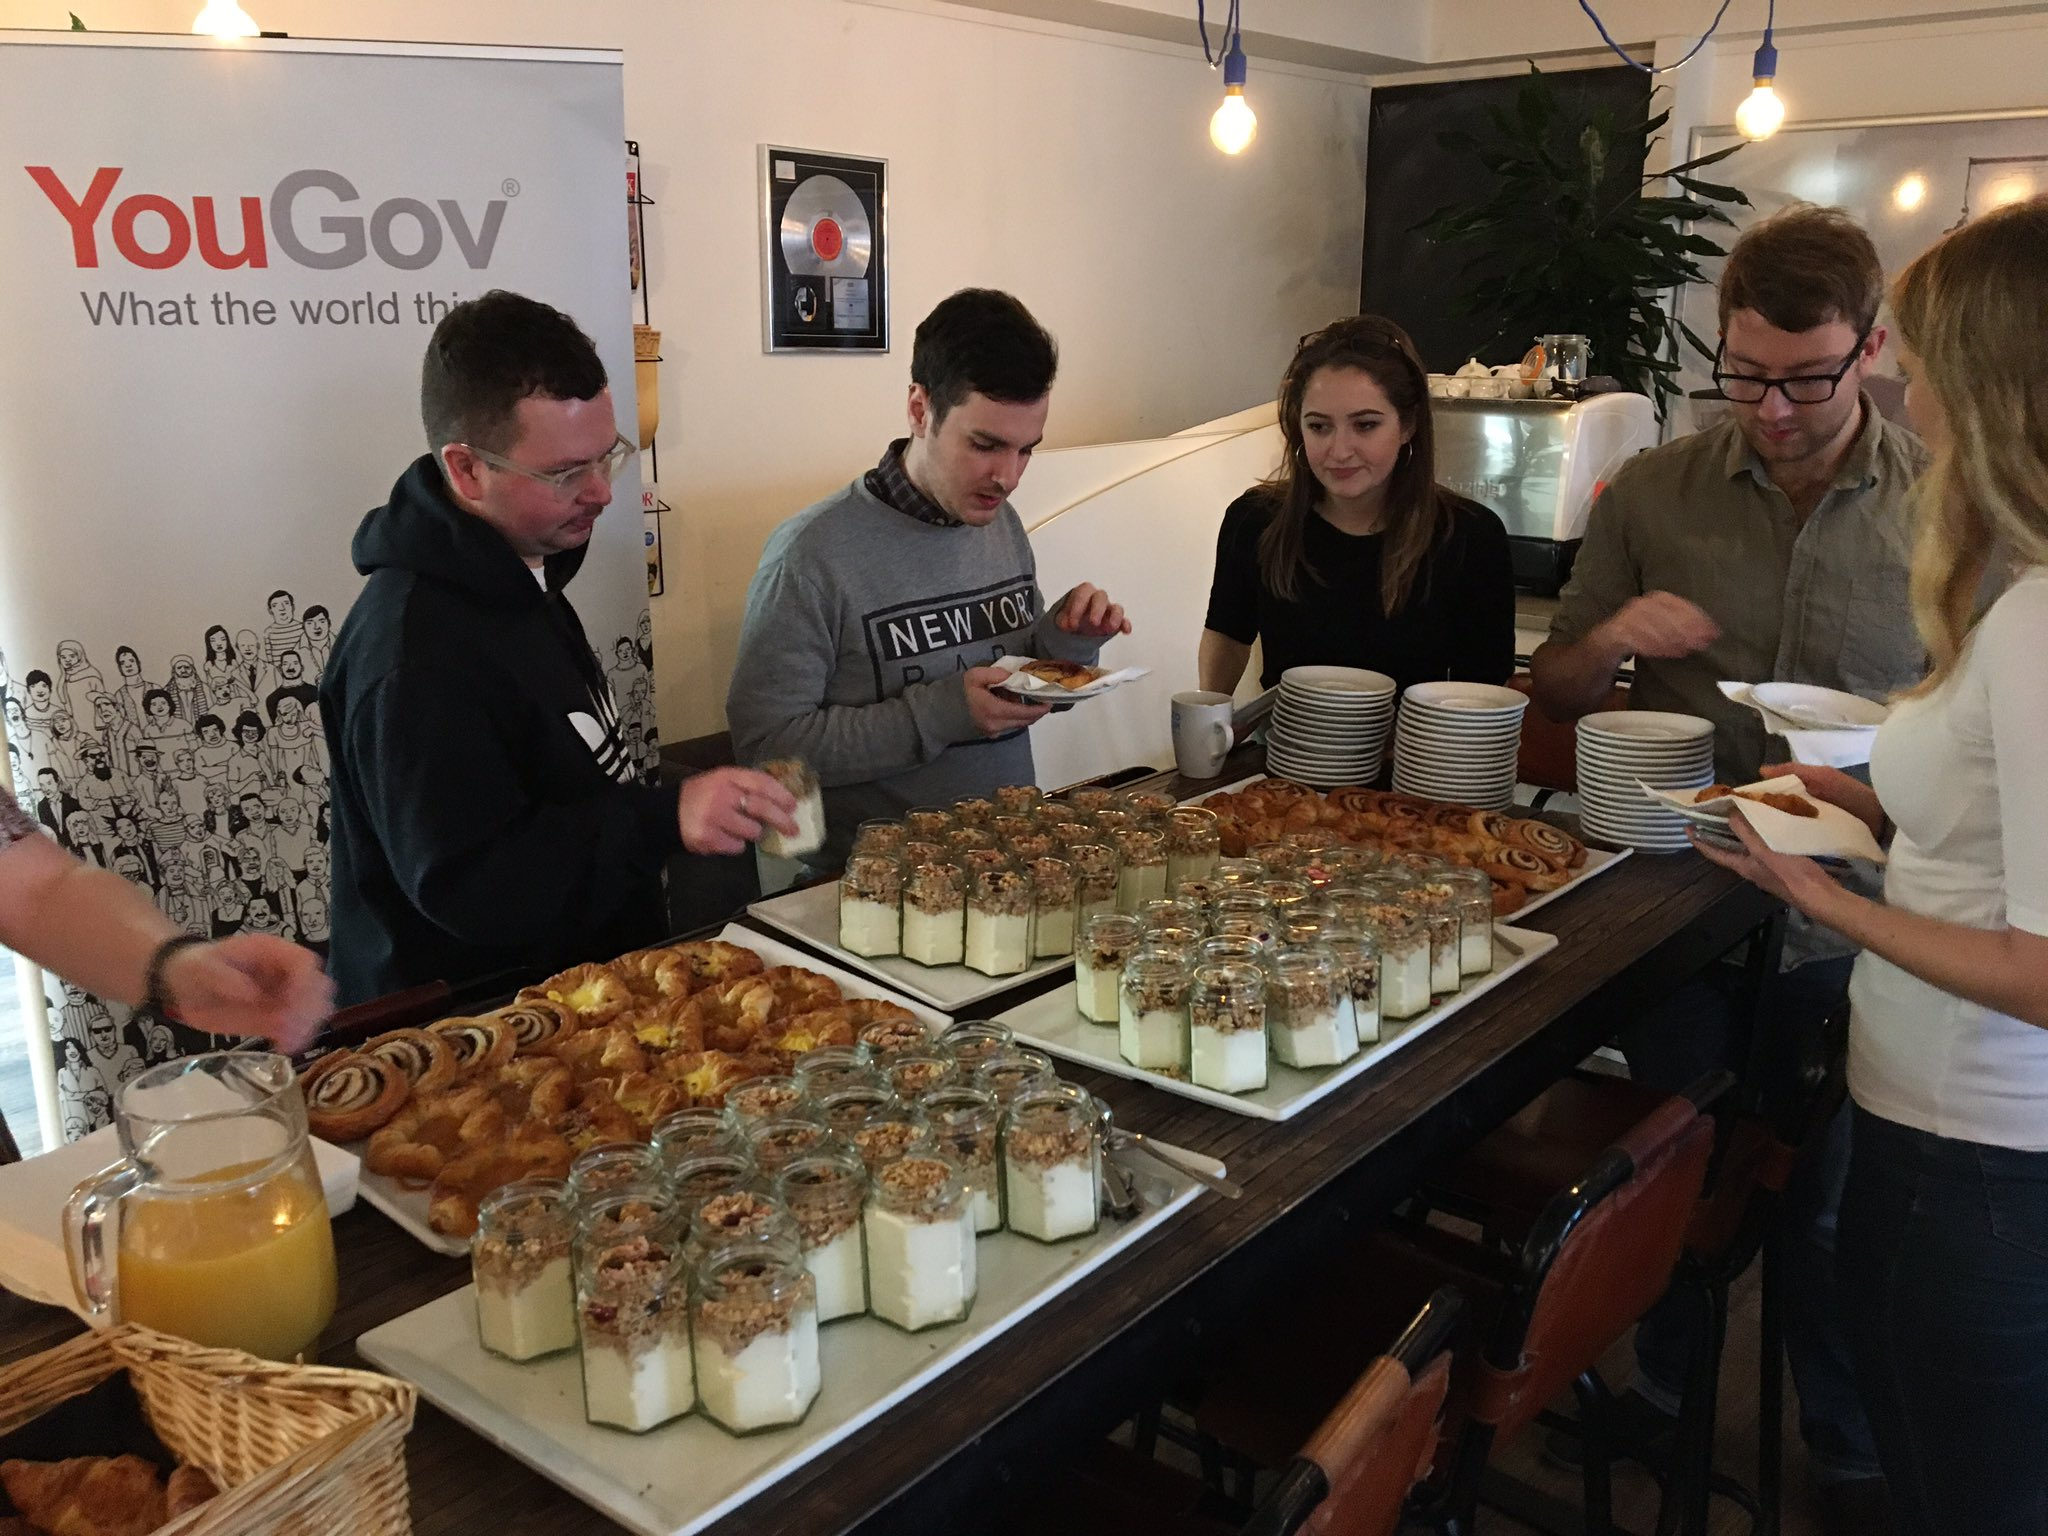 Breakfast is served #YouGovTakeover 🥐☕️ https://t.co/qKXfC19UWX